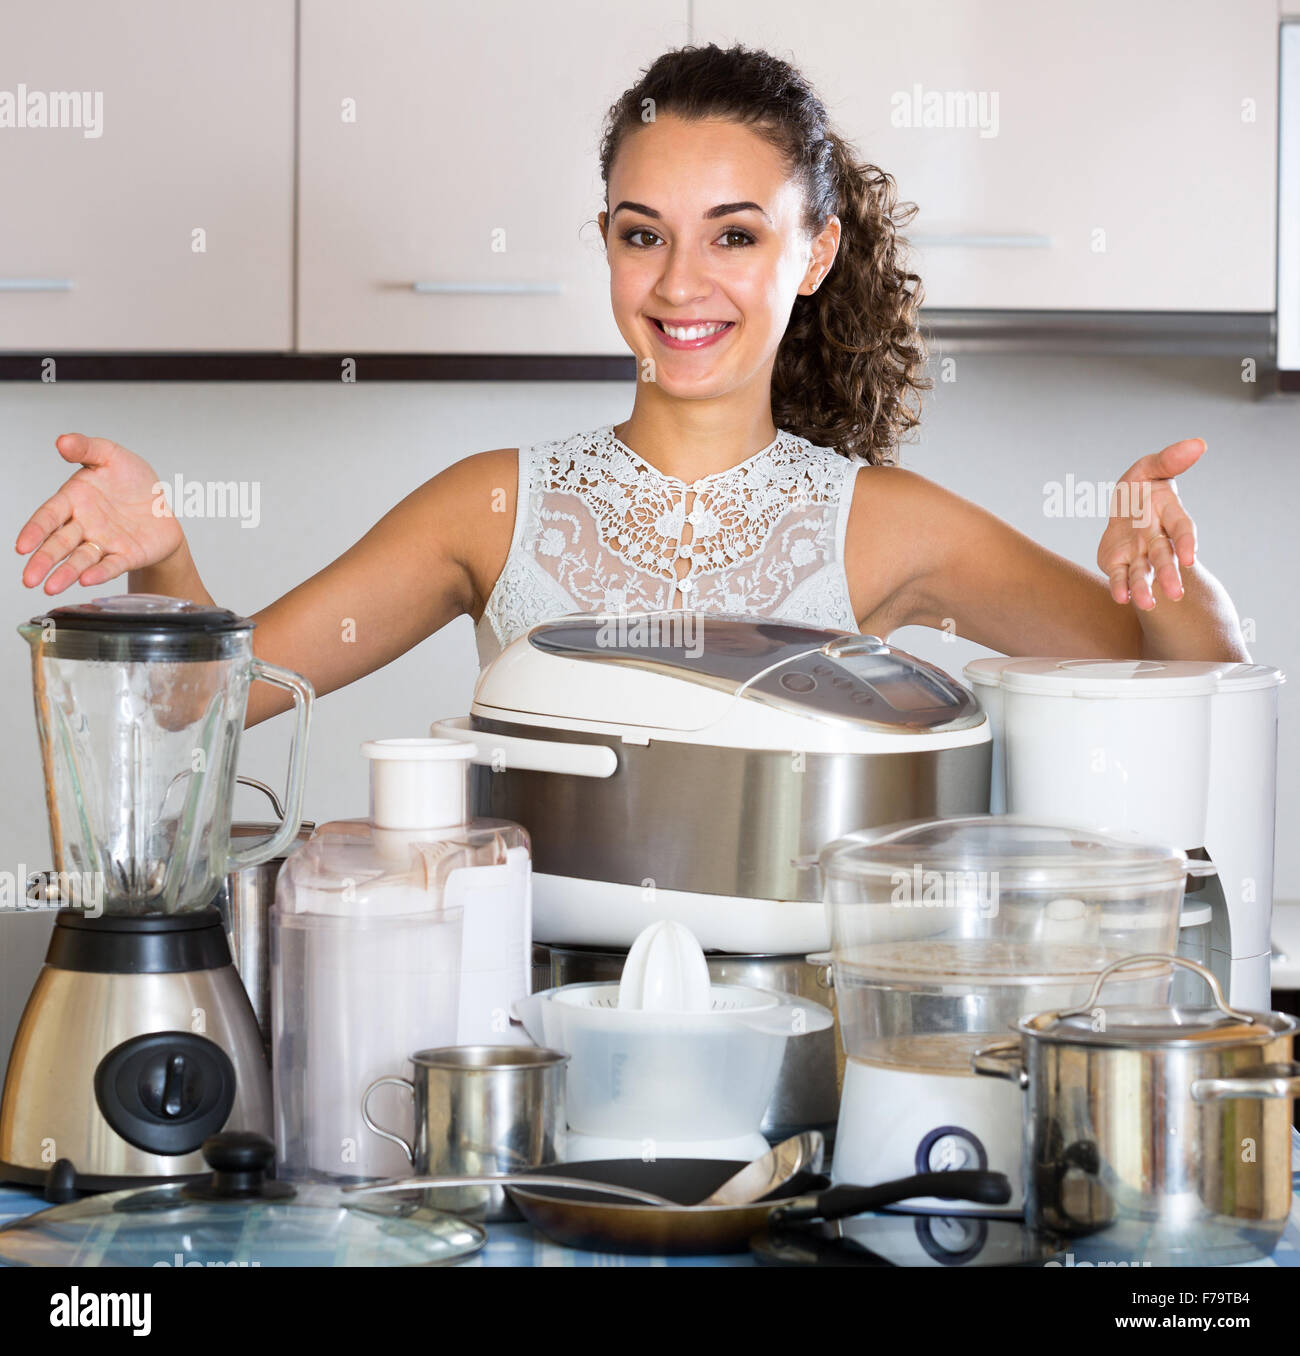 Happy Girl Posing With Appliances At Home Kitchen Stock Photo Alamy